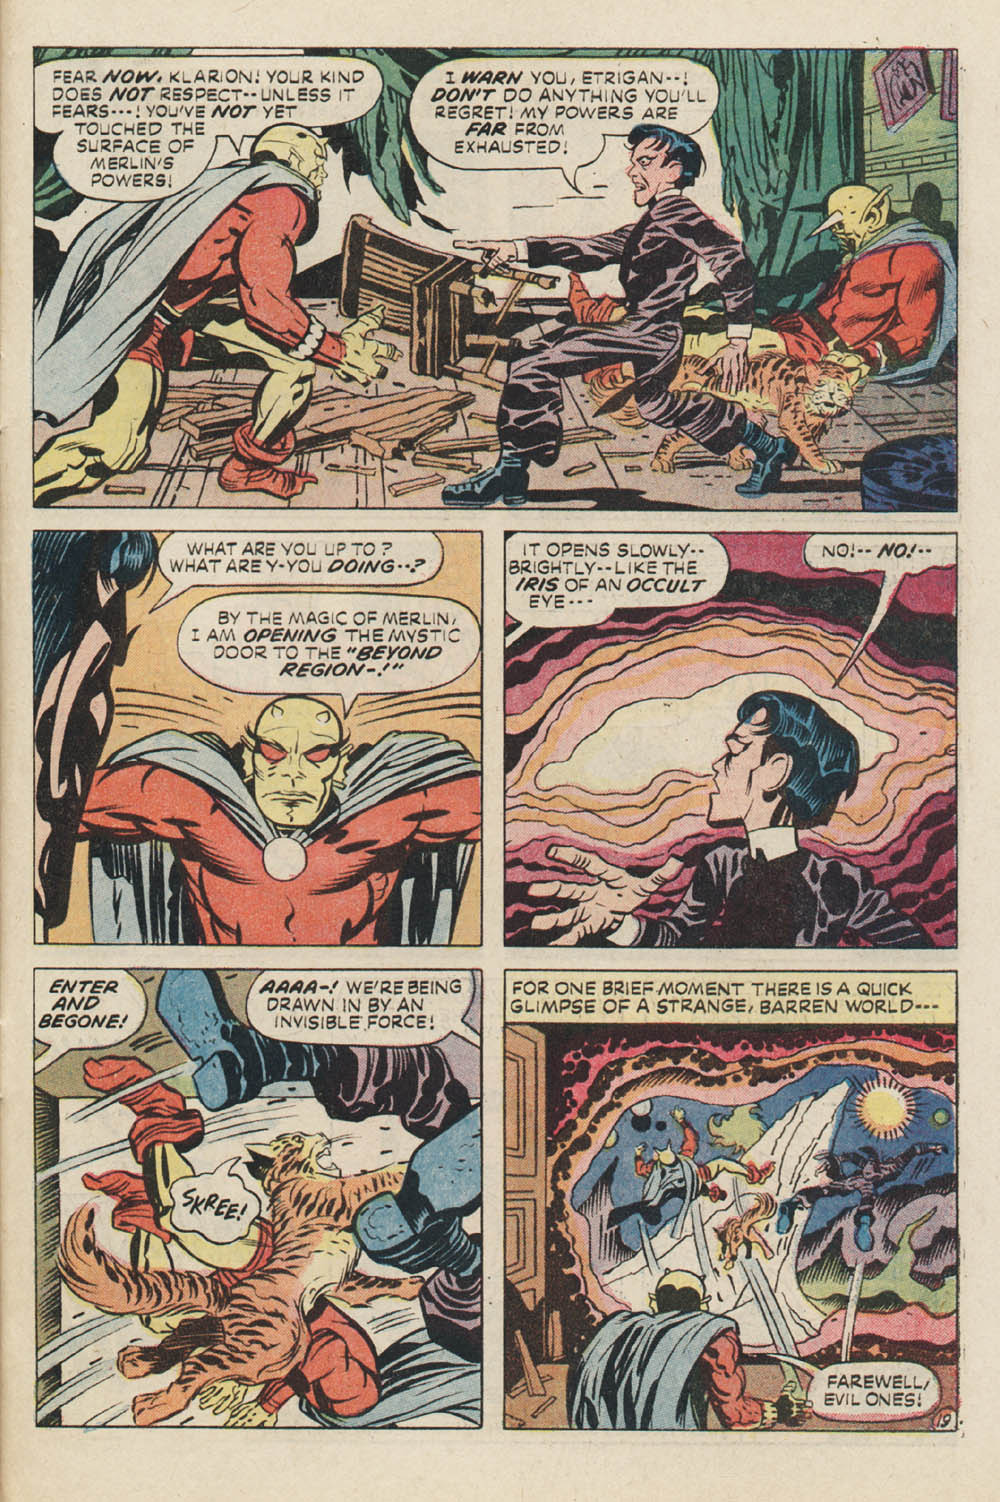 In this scan he opens a magical portal to another dimension to BFR Klarion the with boy. This would be the first of 3 times Etrigan magically BFR's Klarion.